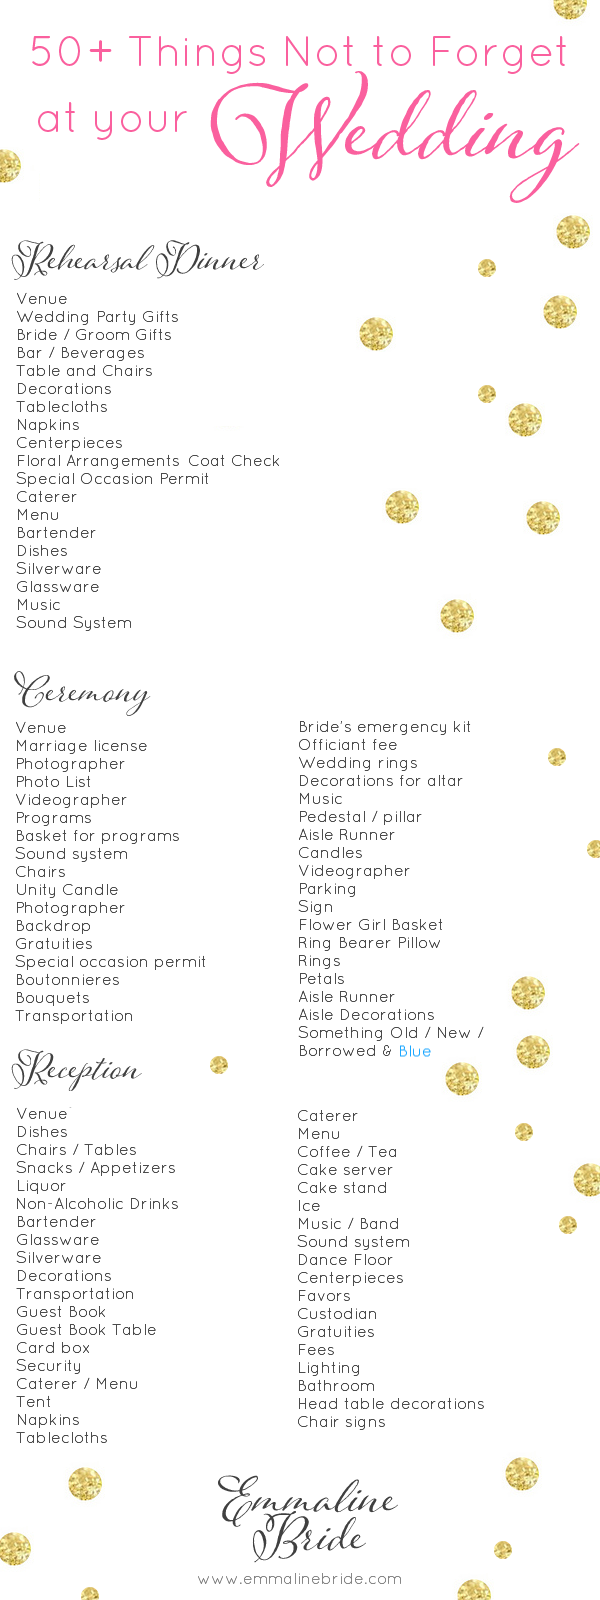 wedding checklist - things not to forget at your wedding - Wedding ...